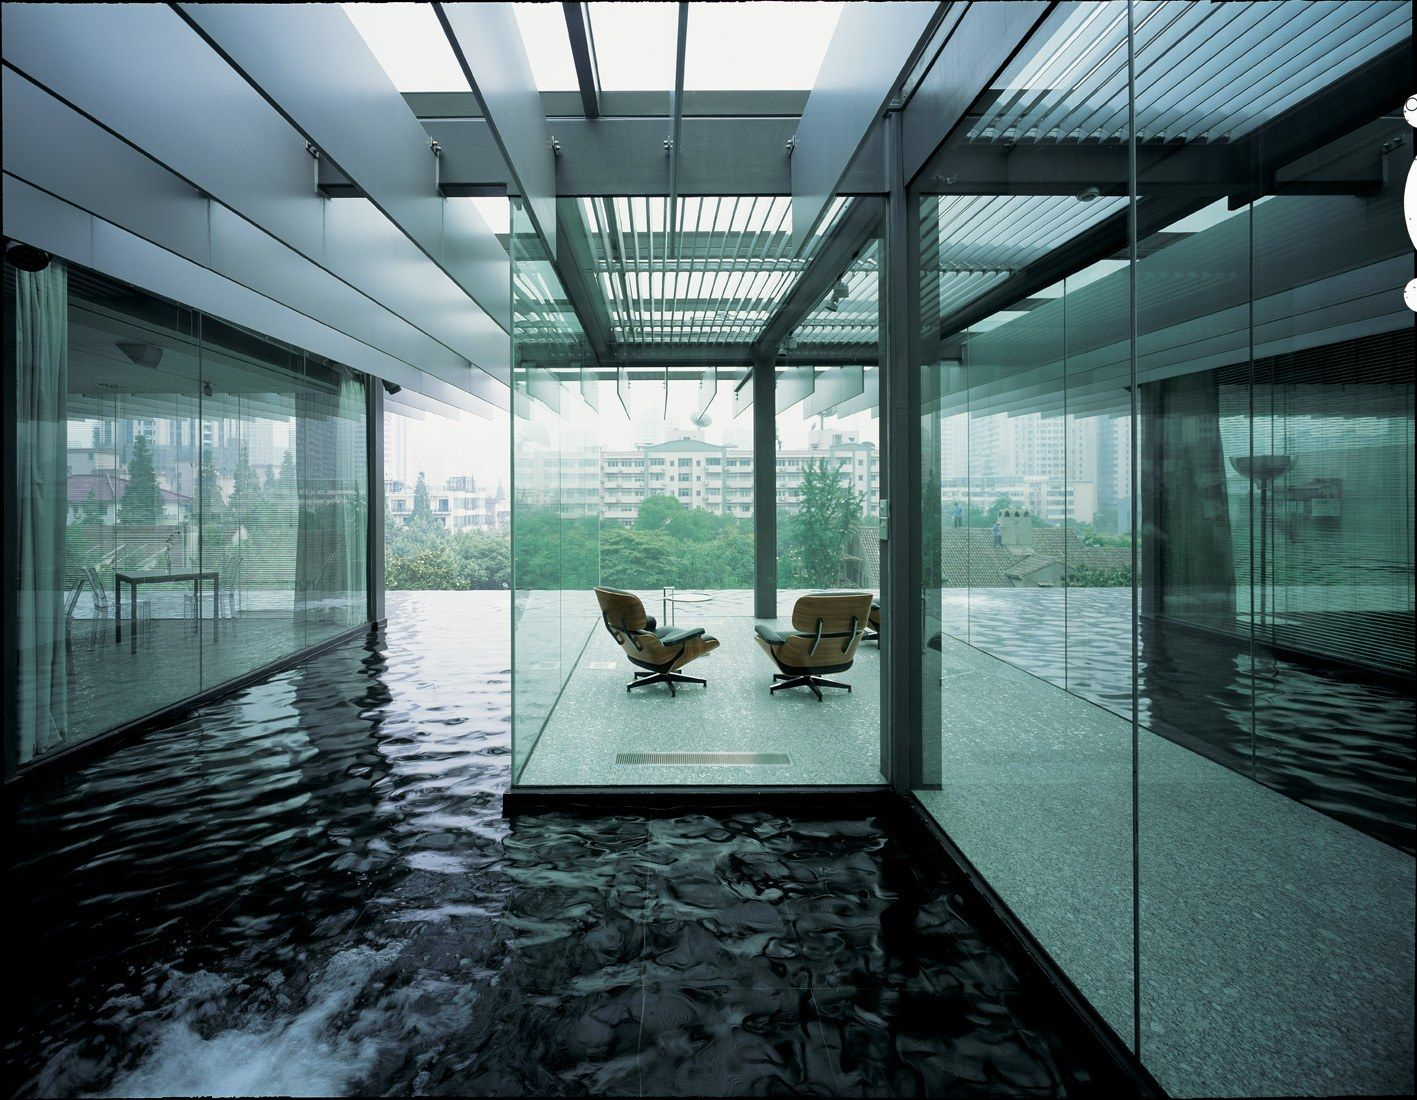 The Complete Works Of Kengo Kuma Show The Dynamic Powers Of Japanese Architecture Modern Japanese Architecture Japanese Architecture Architecture